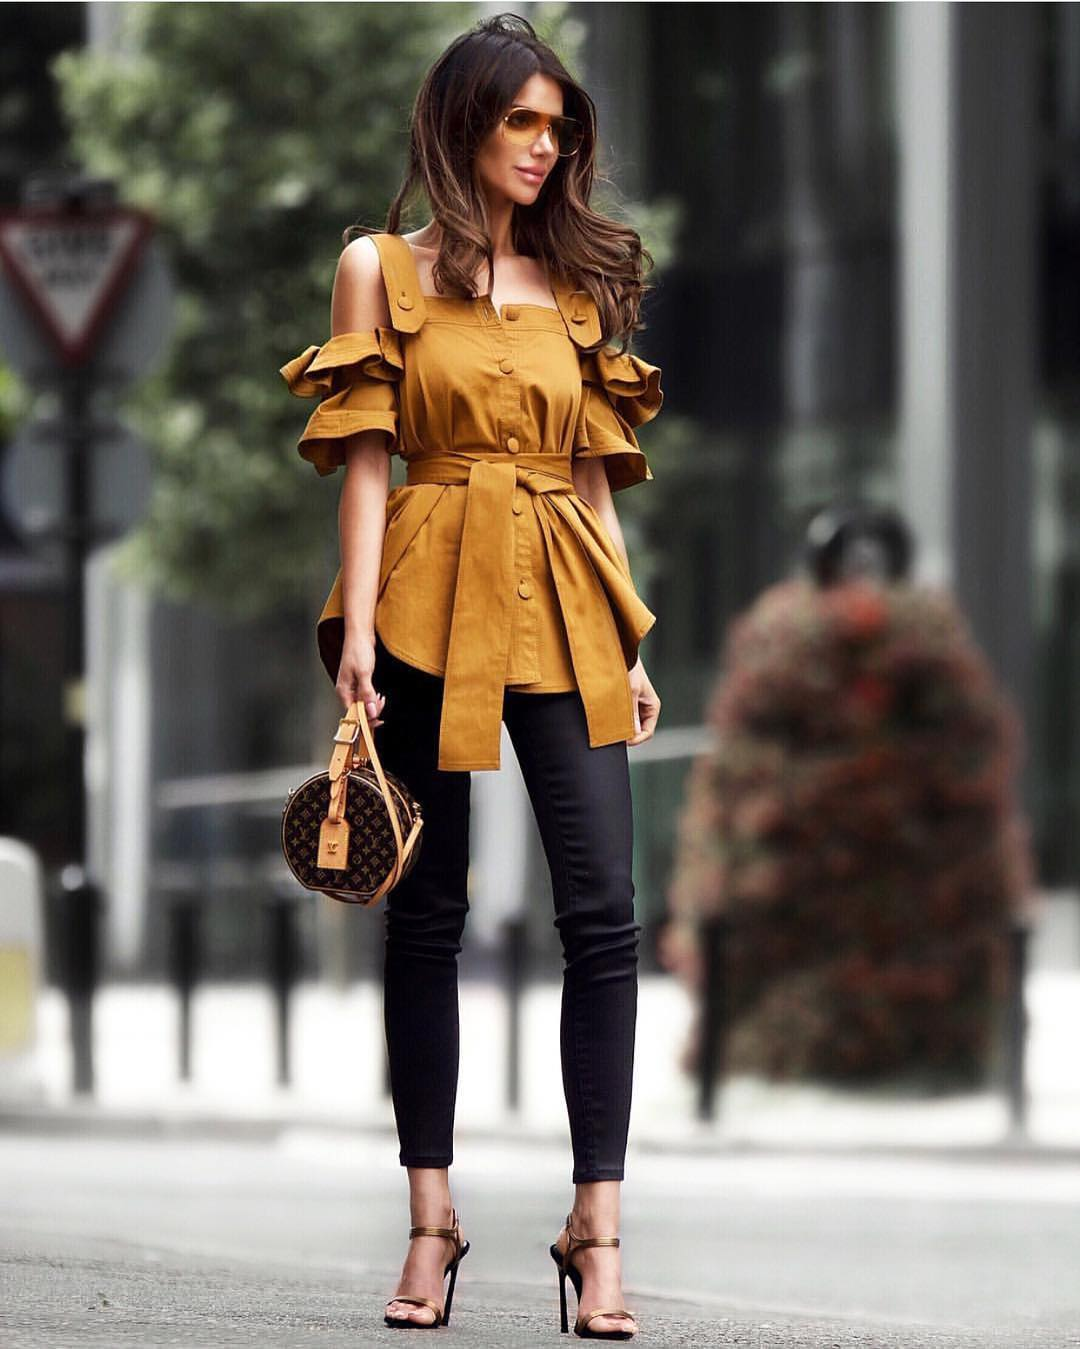 Mustard Brown Safari Style Top And Black Coated Skinnies For Summer 2019